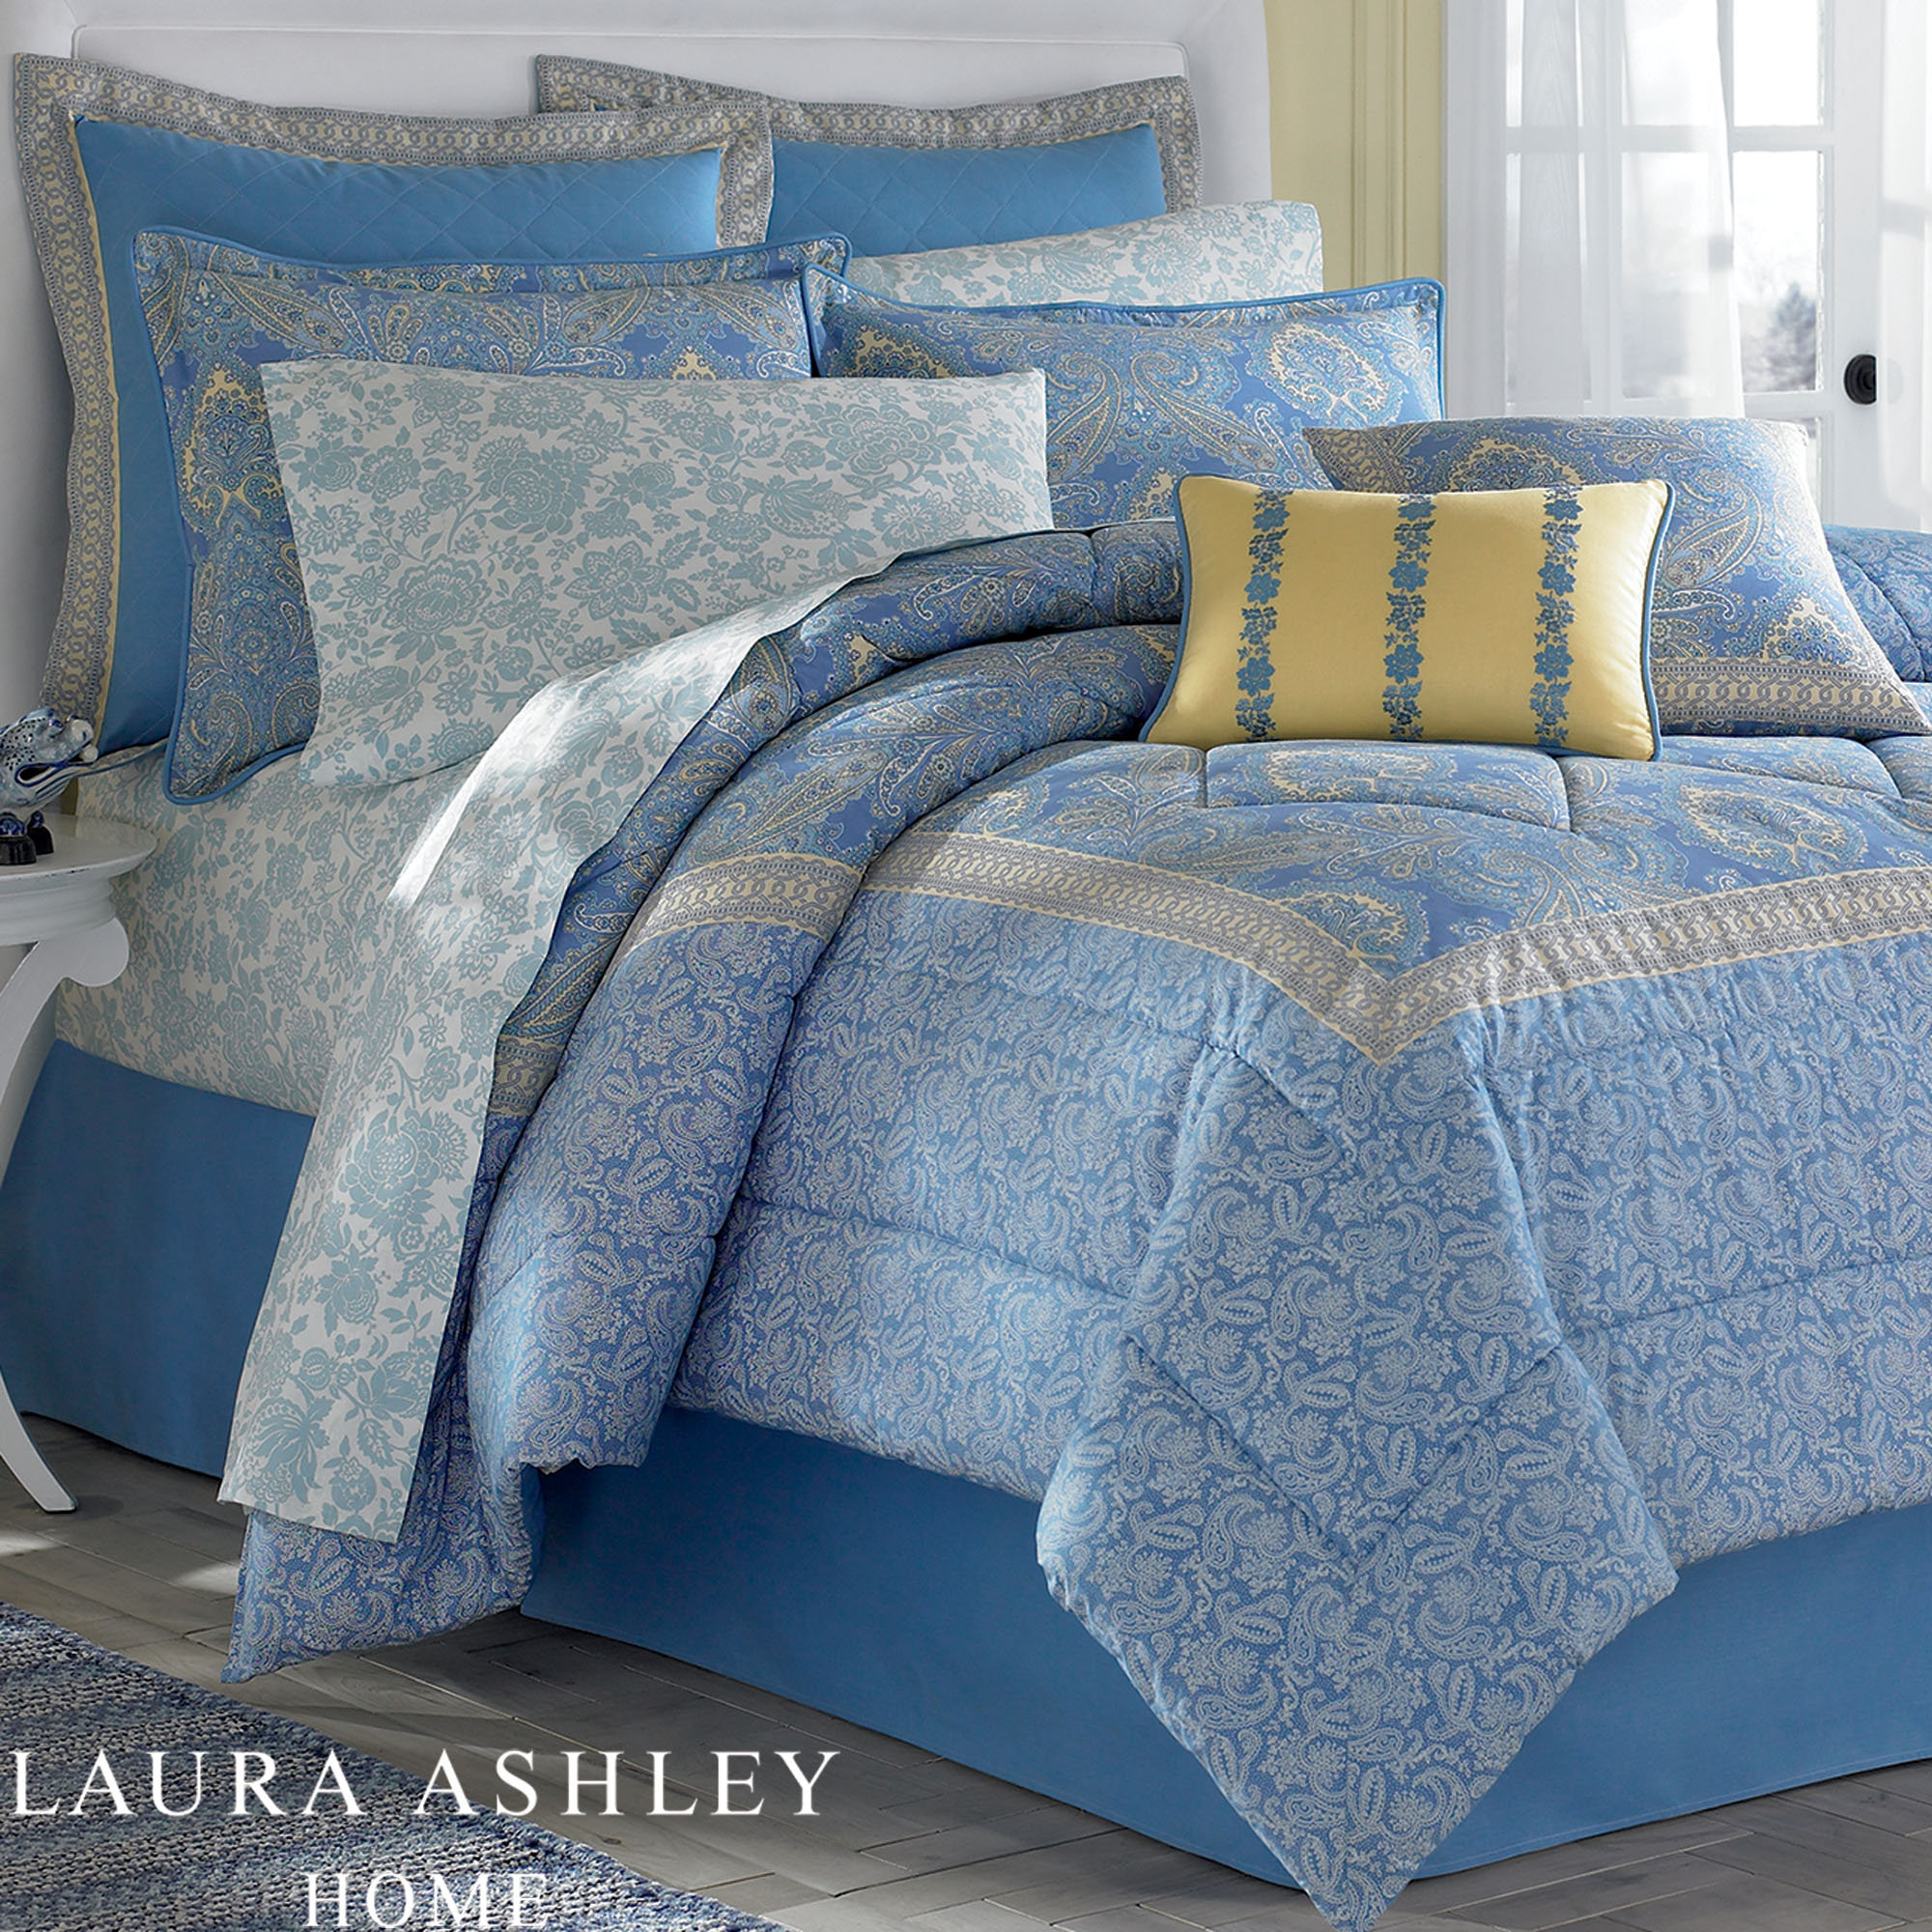 acharming laura ashley bedding in blue and floral pattern plus pillows on grey floor for bedroom decor ideas